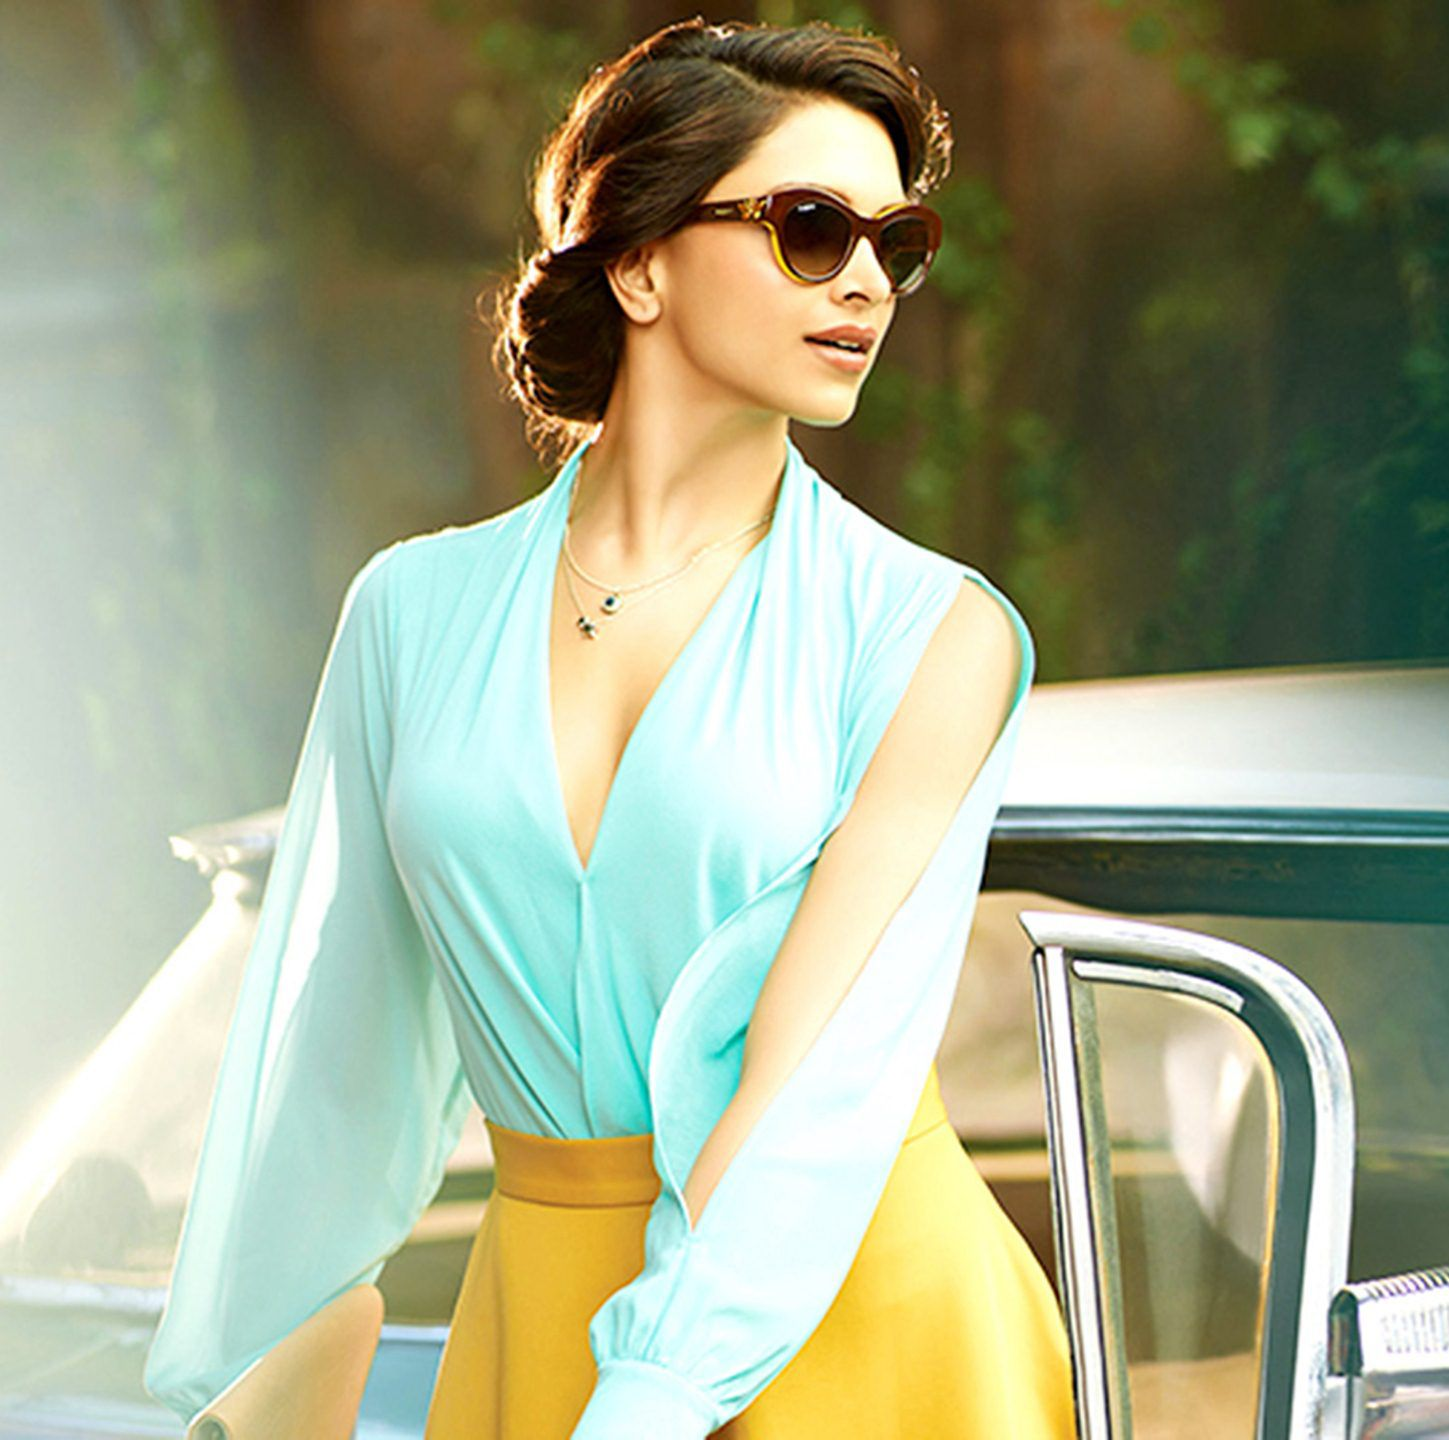 35bc737522c8 Watch out the hot pics of Deepika Padukone Vogue Eyewear Photoshoot here.  This well-known face of Bollywood industry has a terrible sense of style  statement